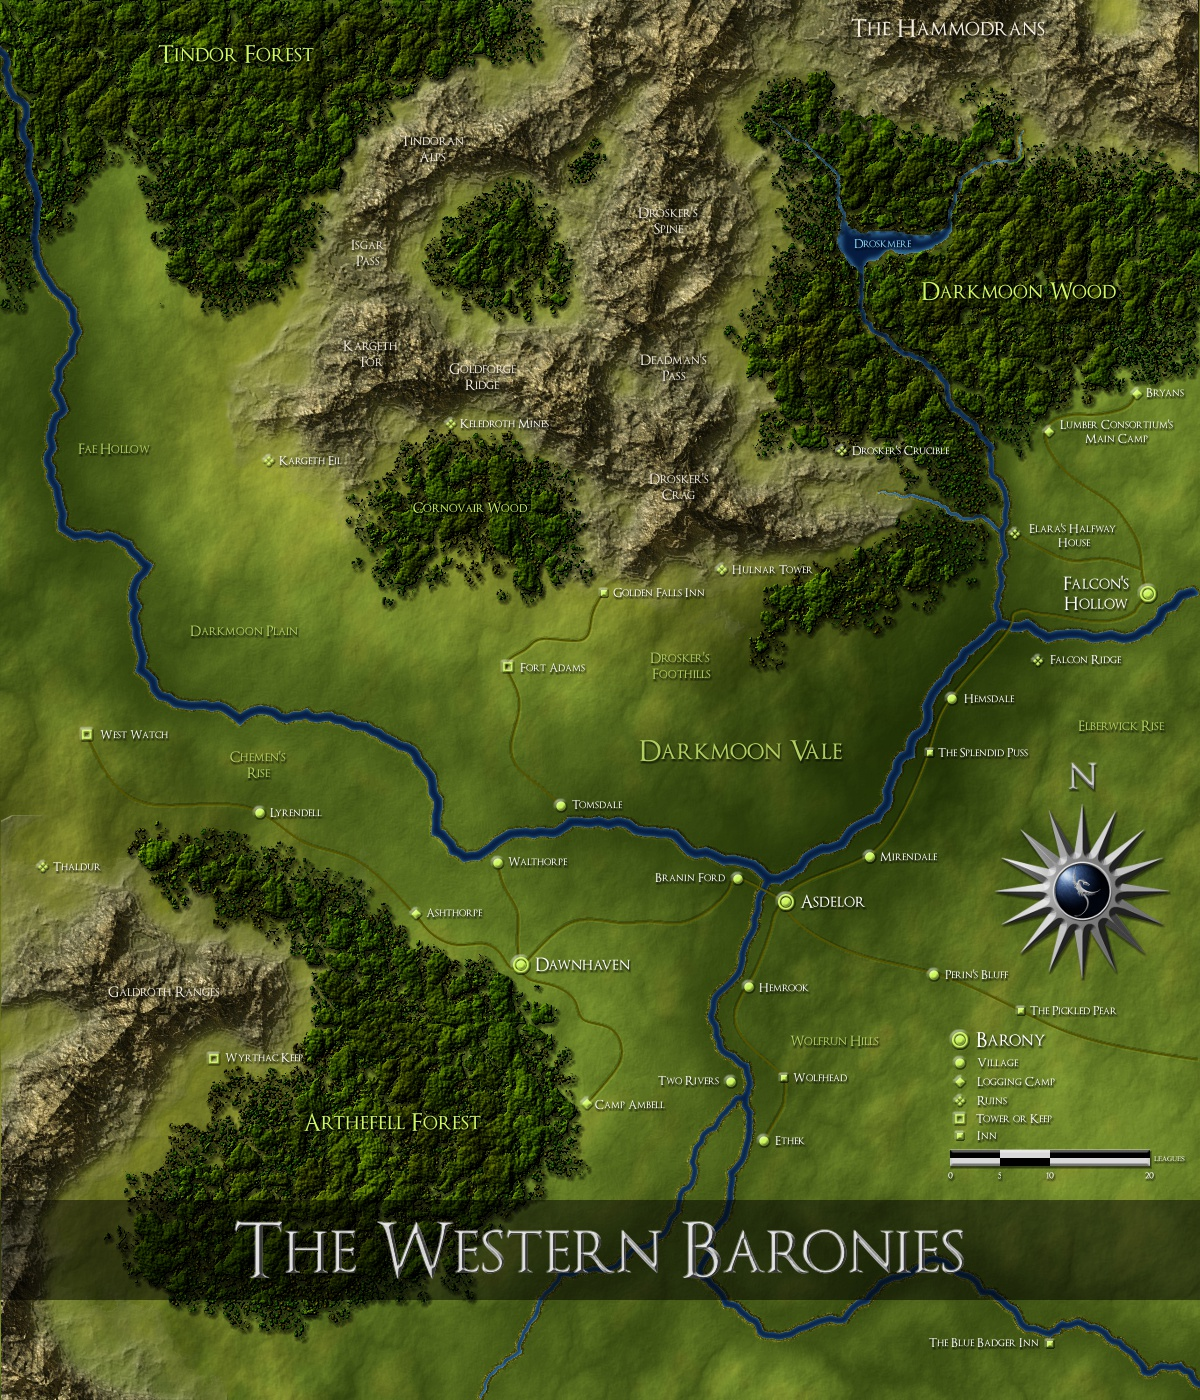 The Western Baronies